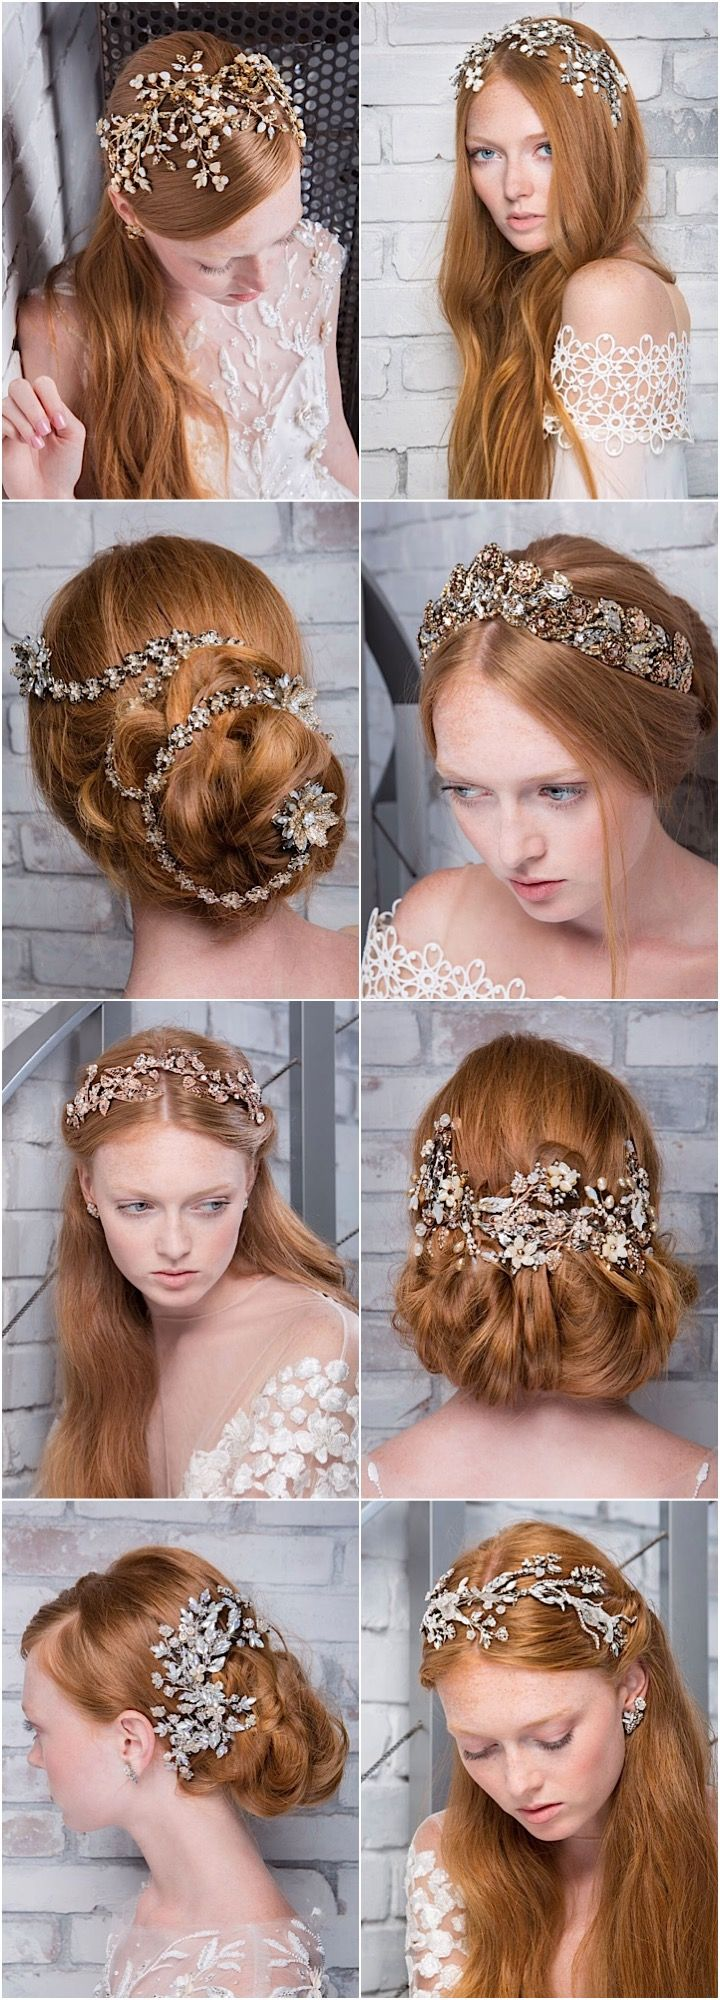 Featured Wedding Hair Accessories: Maria Elena Headpieces & Accessories;